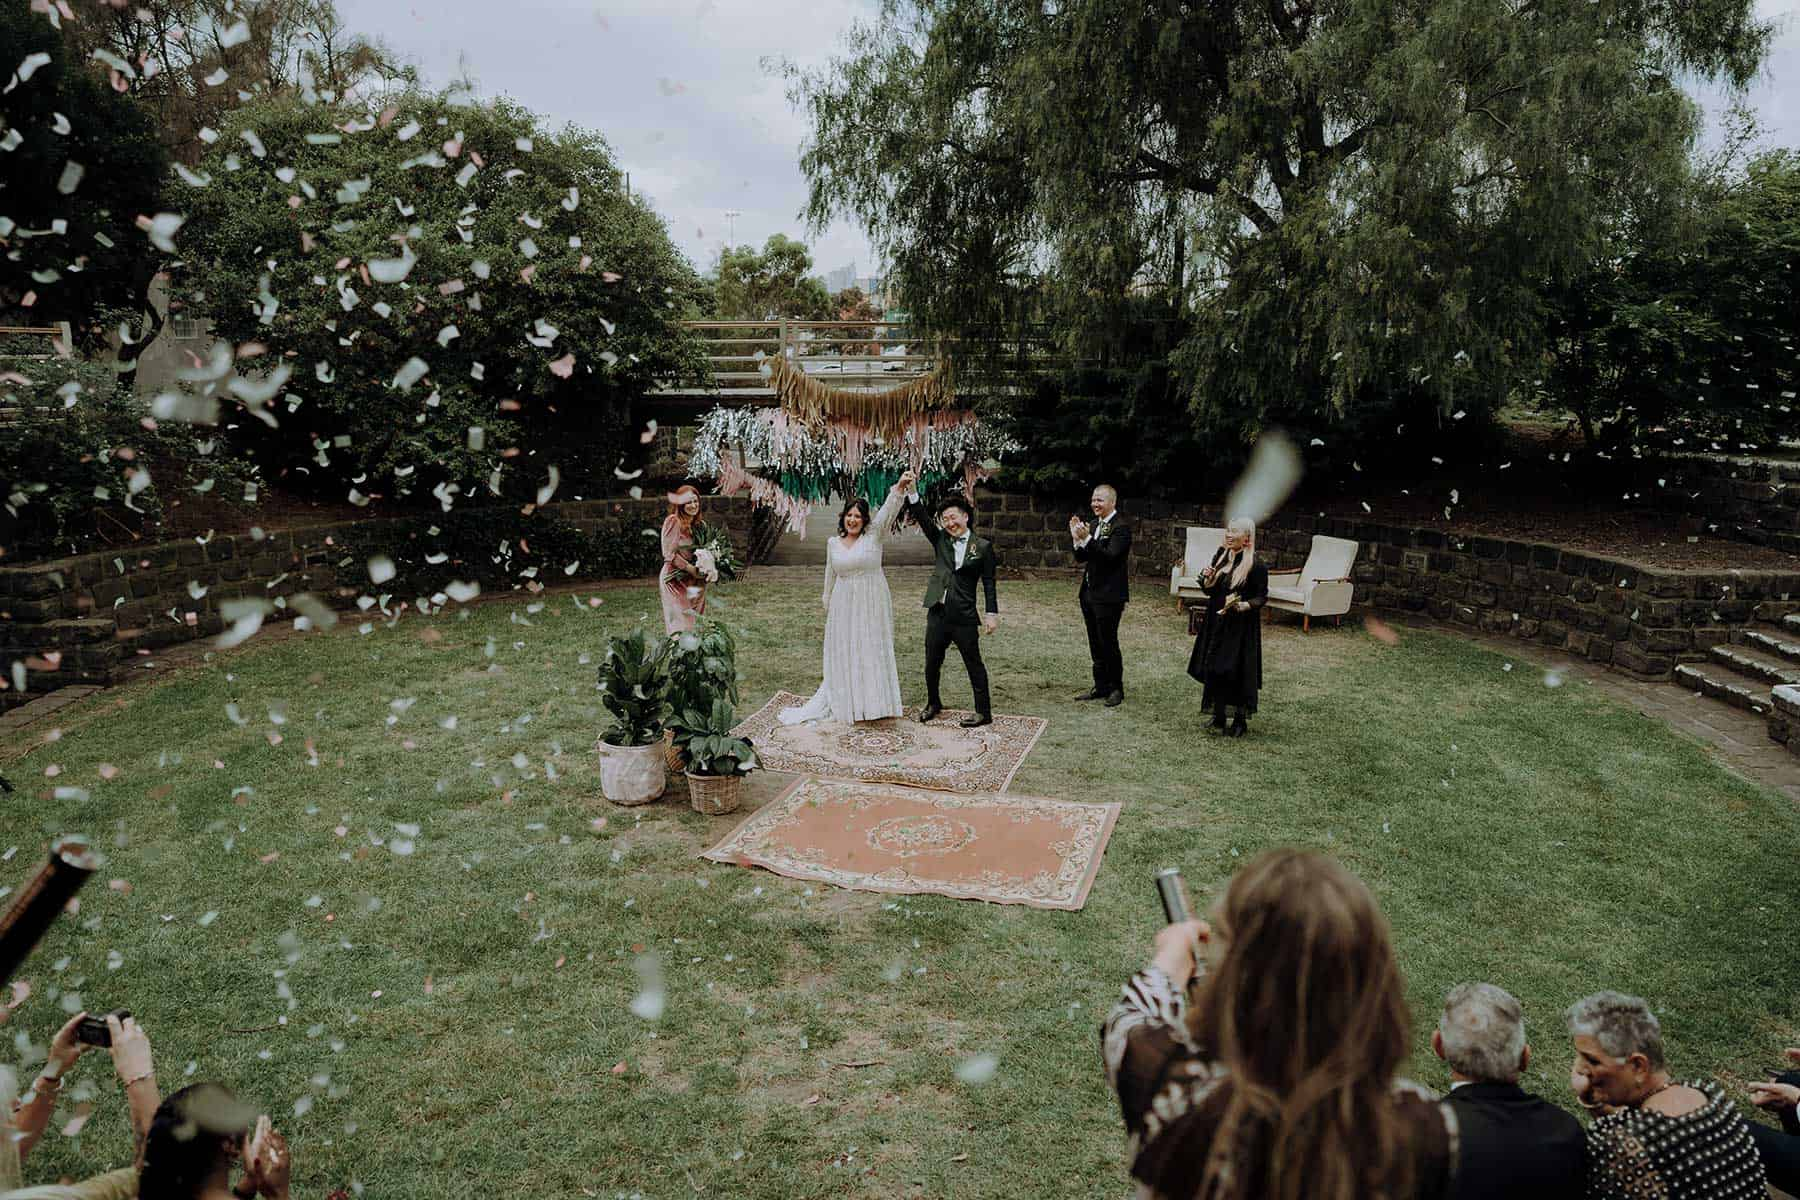 Footscray amphitheatre wedding in Melbourne